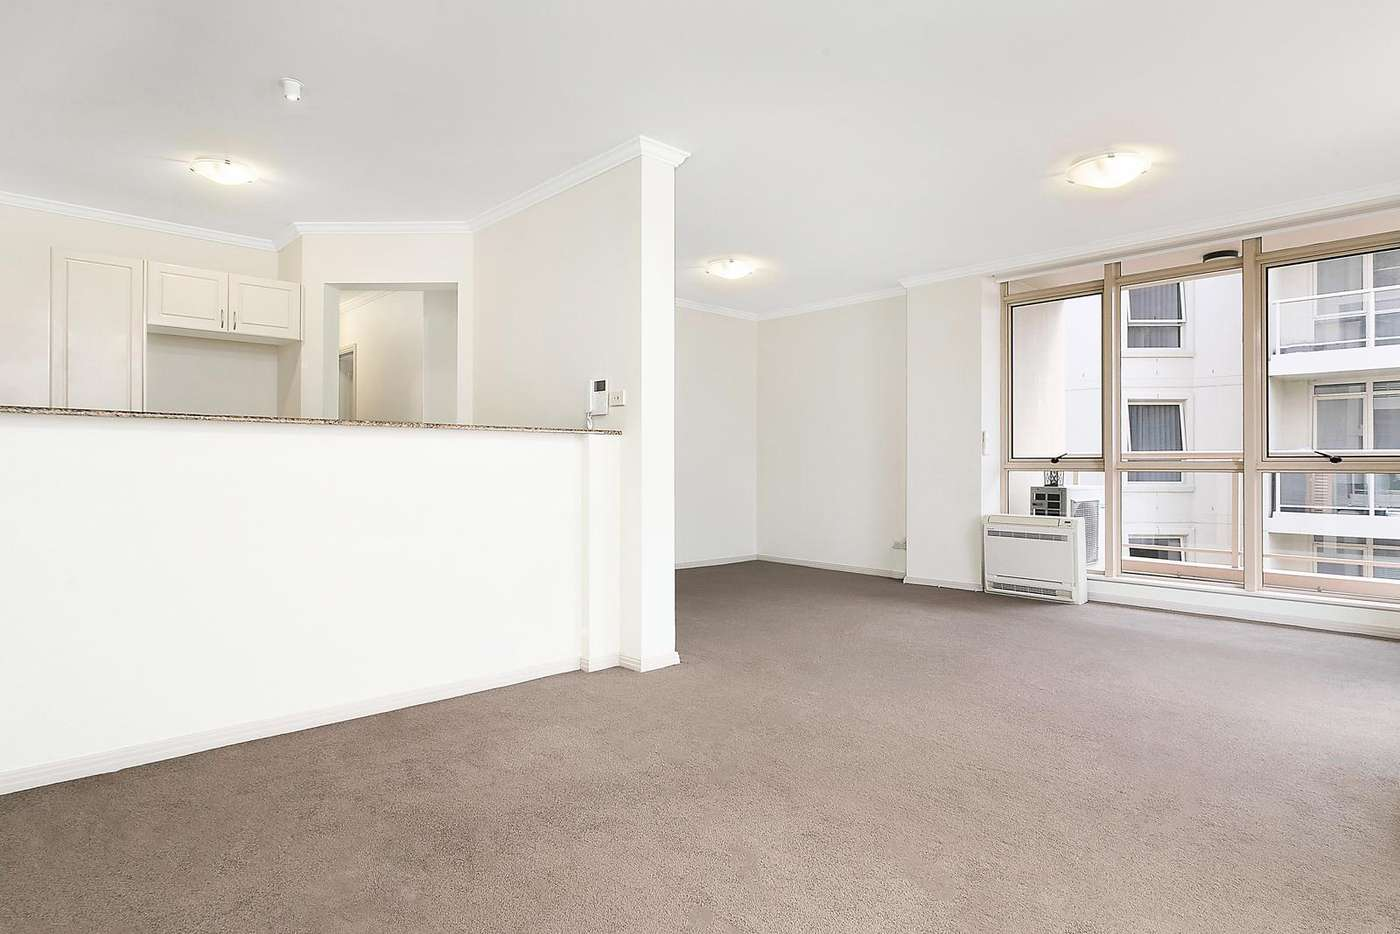 Main view of Homely apartment listing, 406/30 Warayama Street, Rozelle NSW 2039